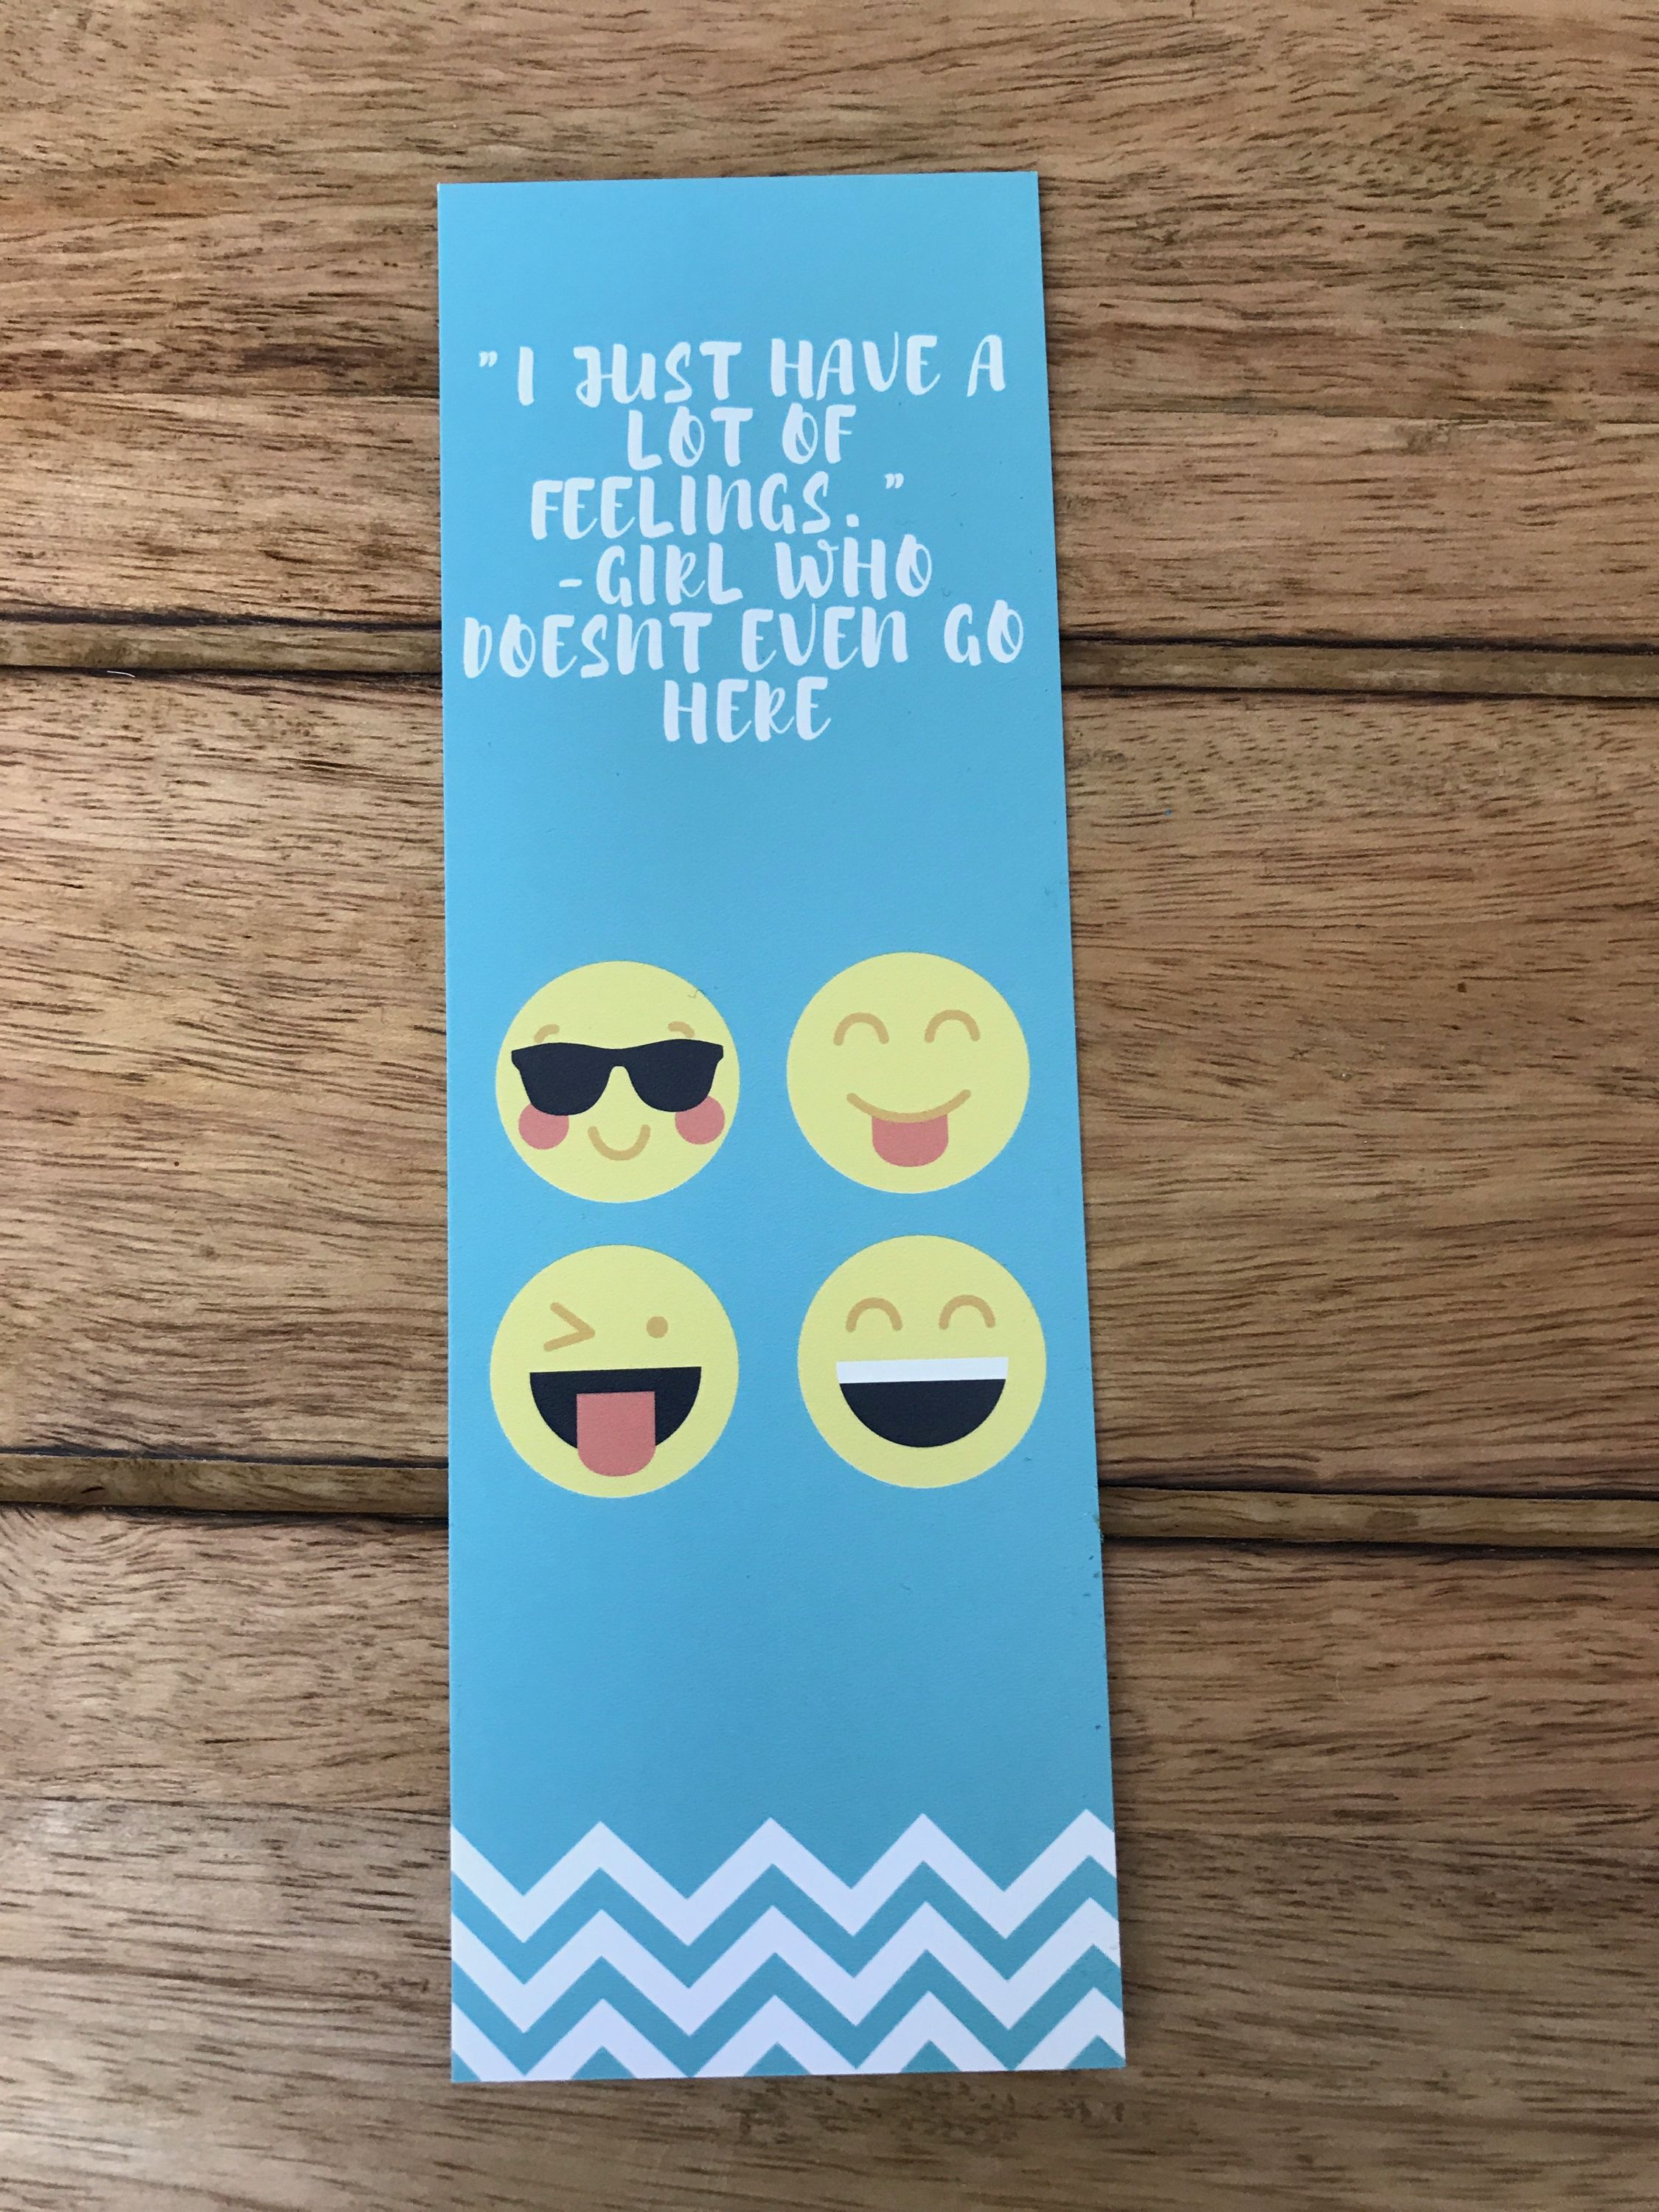 Bookish Gifts Unique Bookmarks Bookmark Ideas Bookmark For Mean Girls Lovers Gift For Reader Gift Fo Gifts For Bookworms Bookish Gifts Gifts For Readers